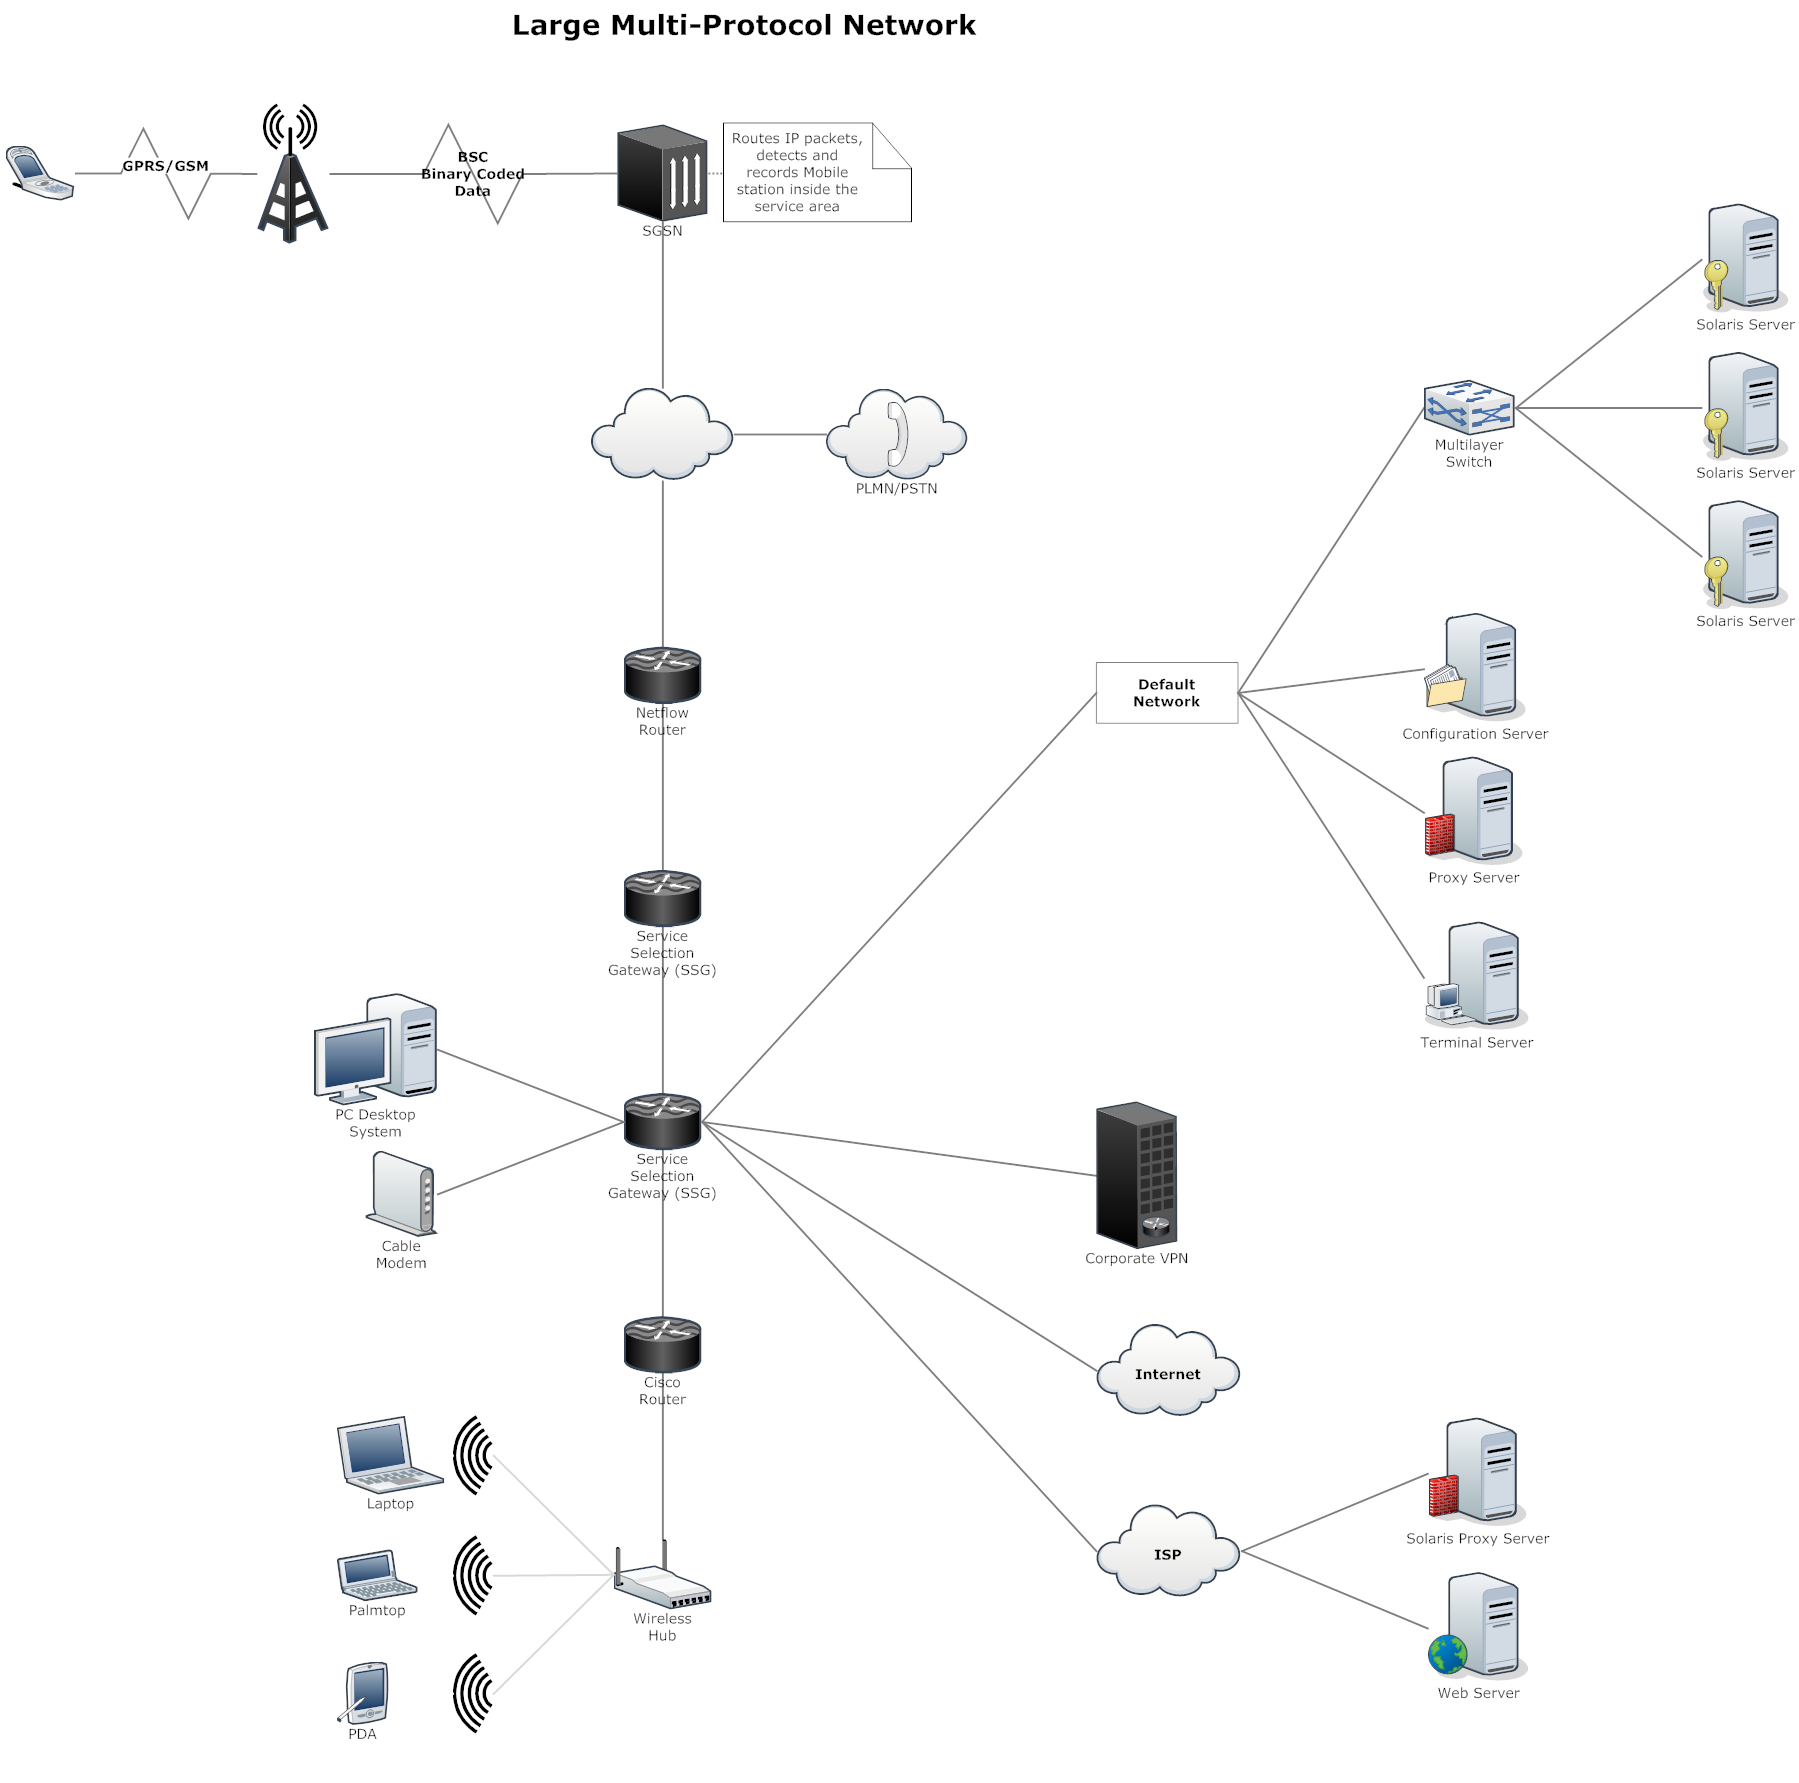 Basic Site Map Example: Large Multi-Protocol Network